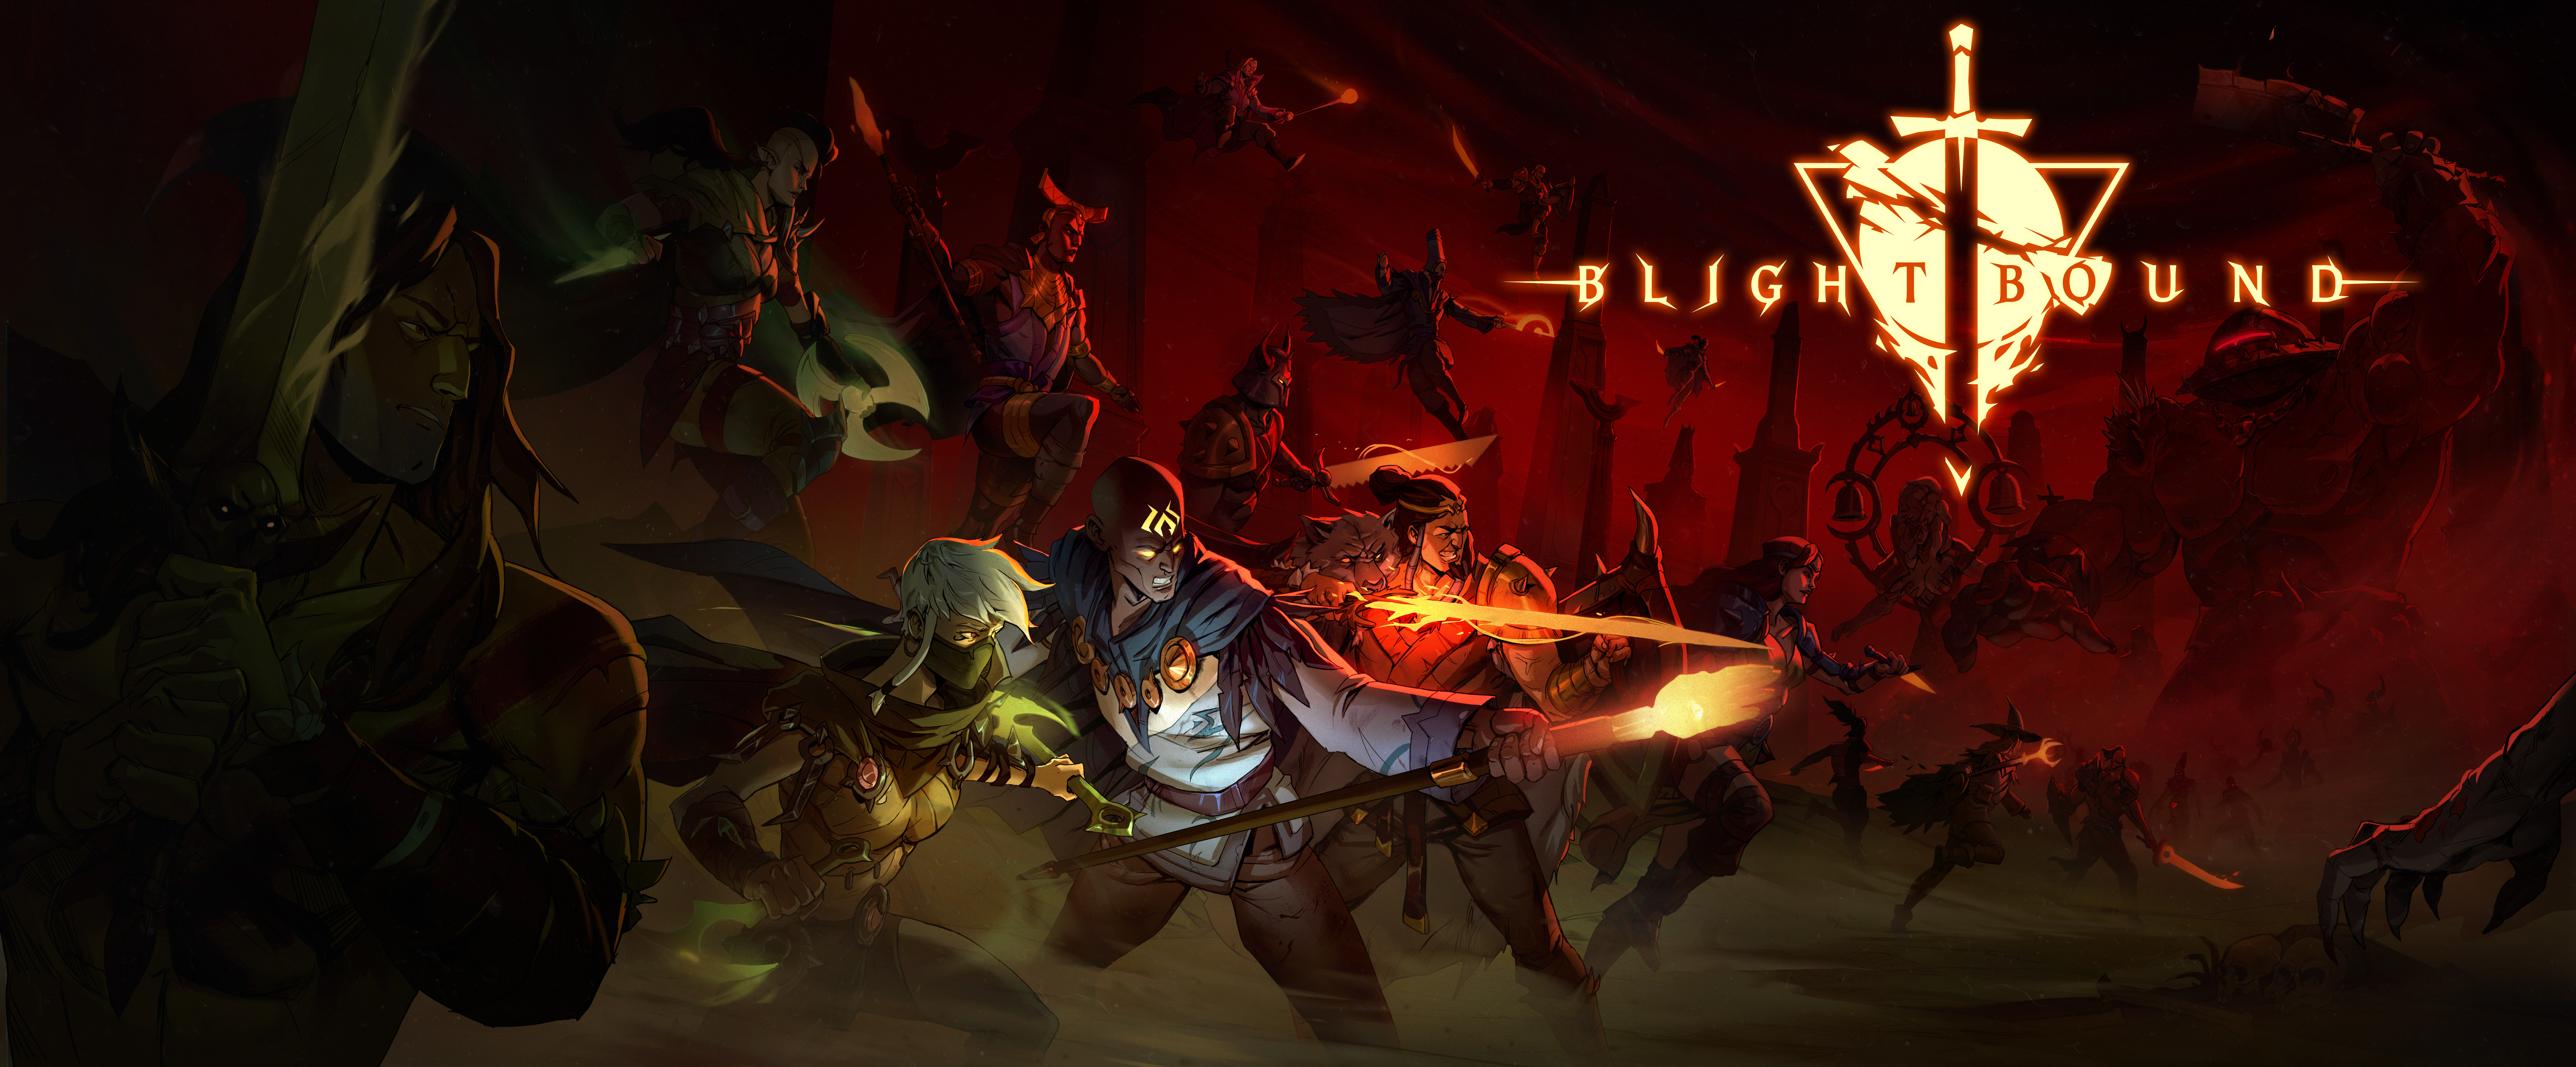 Blightbound Key Art